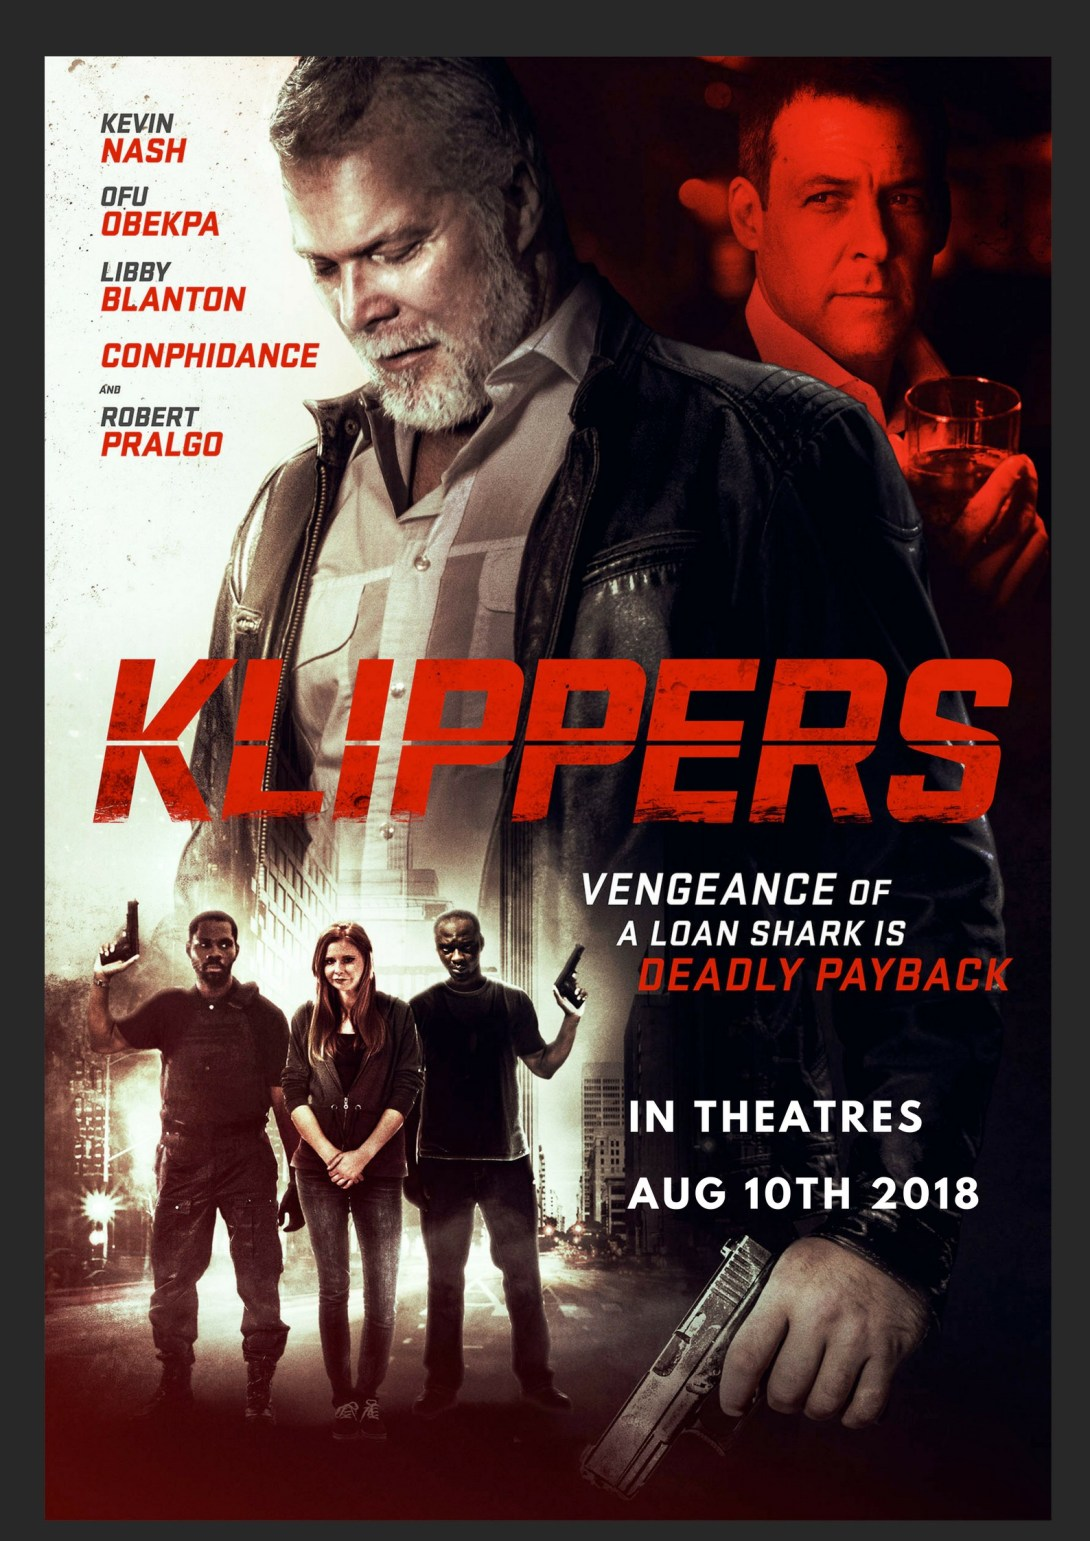 Ofu Obekpa WWE Legend Kevin Nash Conphidance Libby Blanton star in mind blowing action movie Klippers